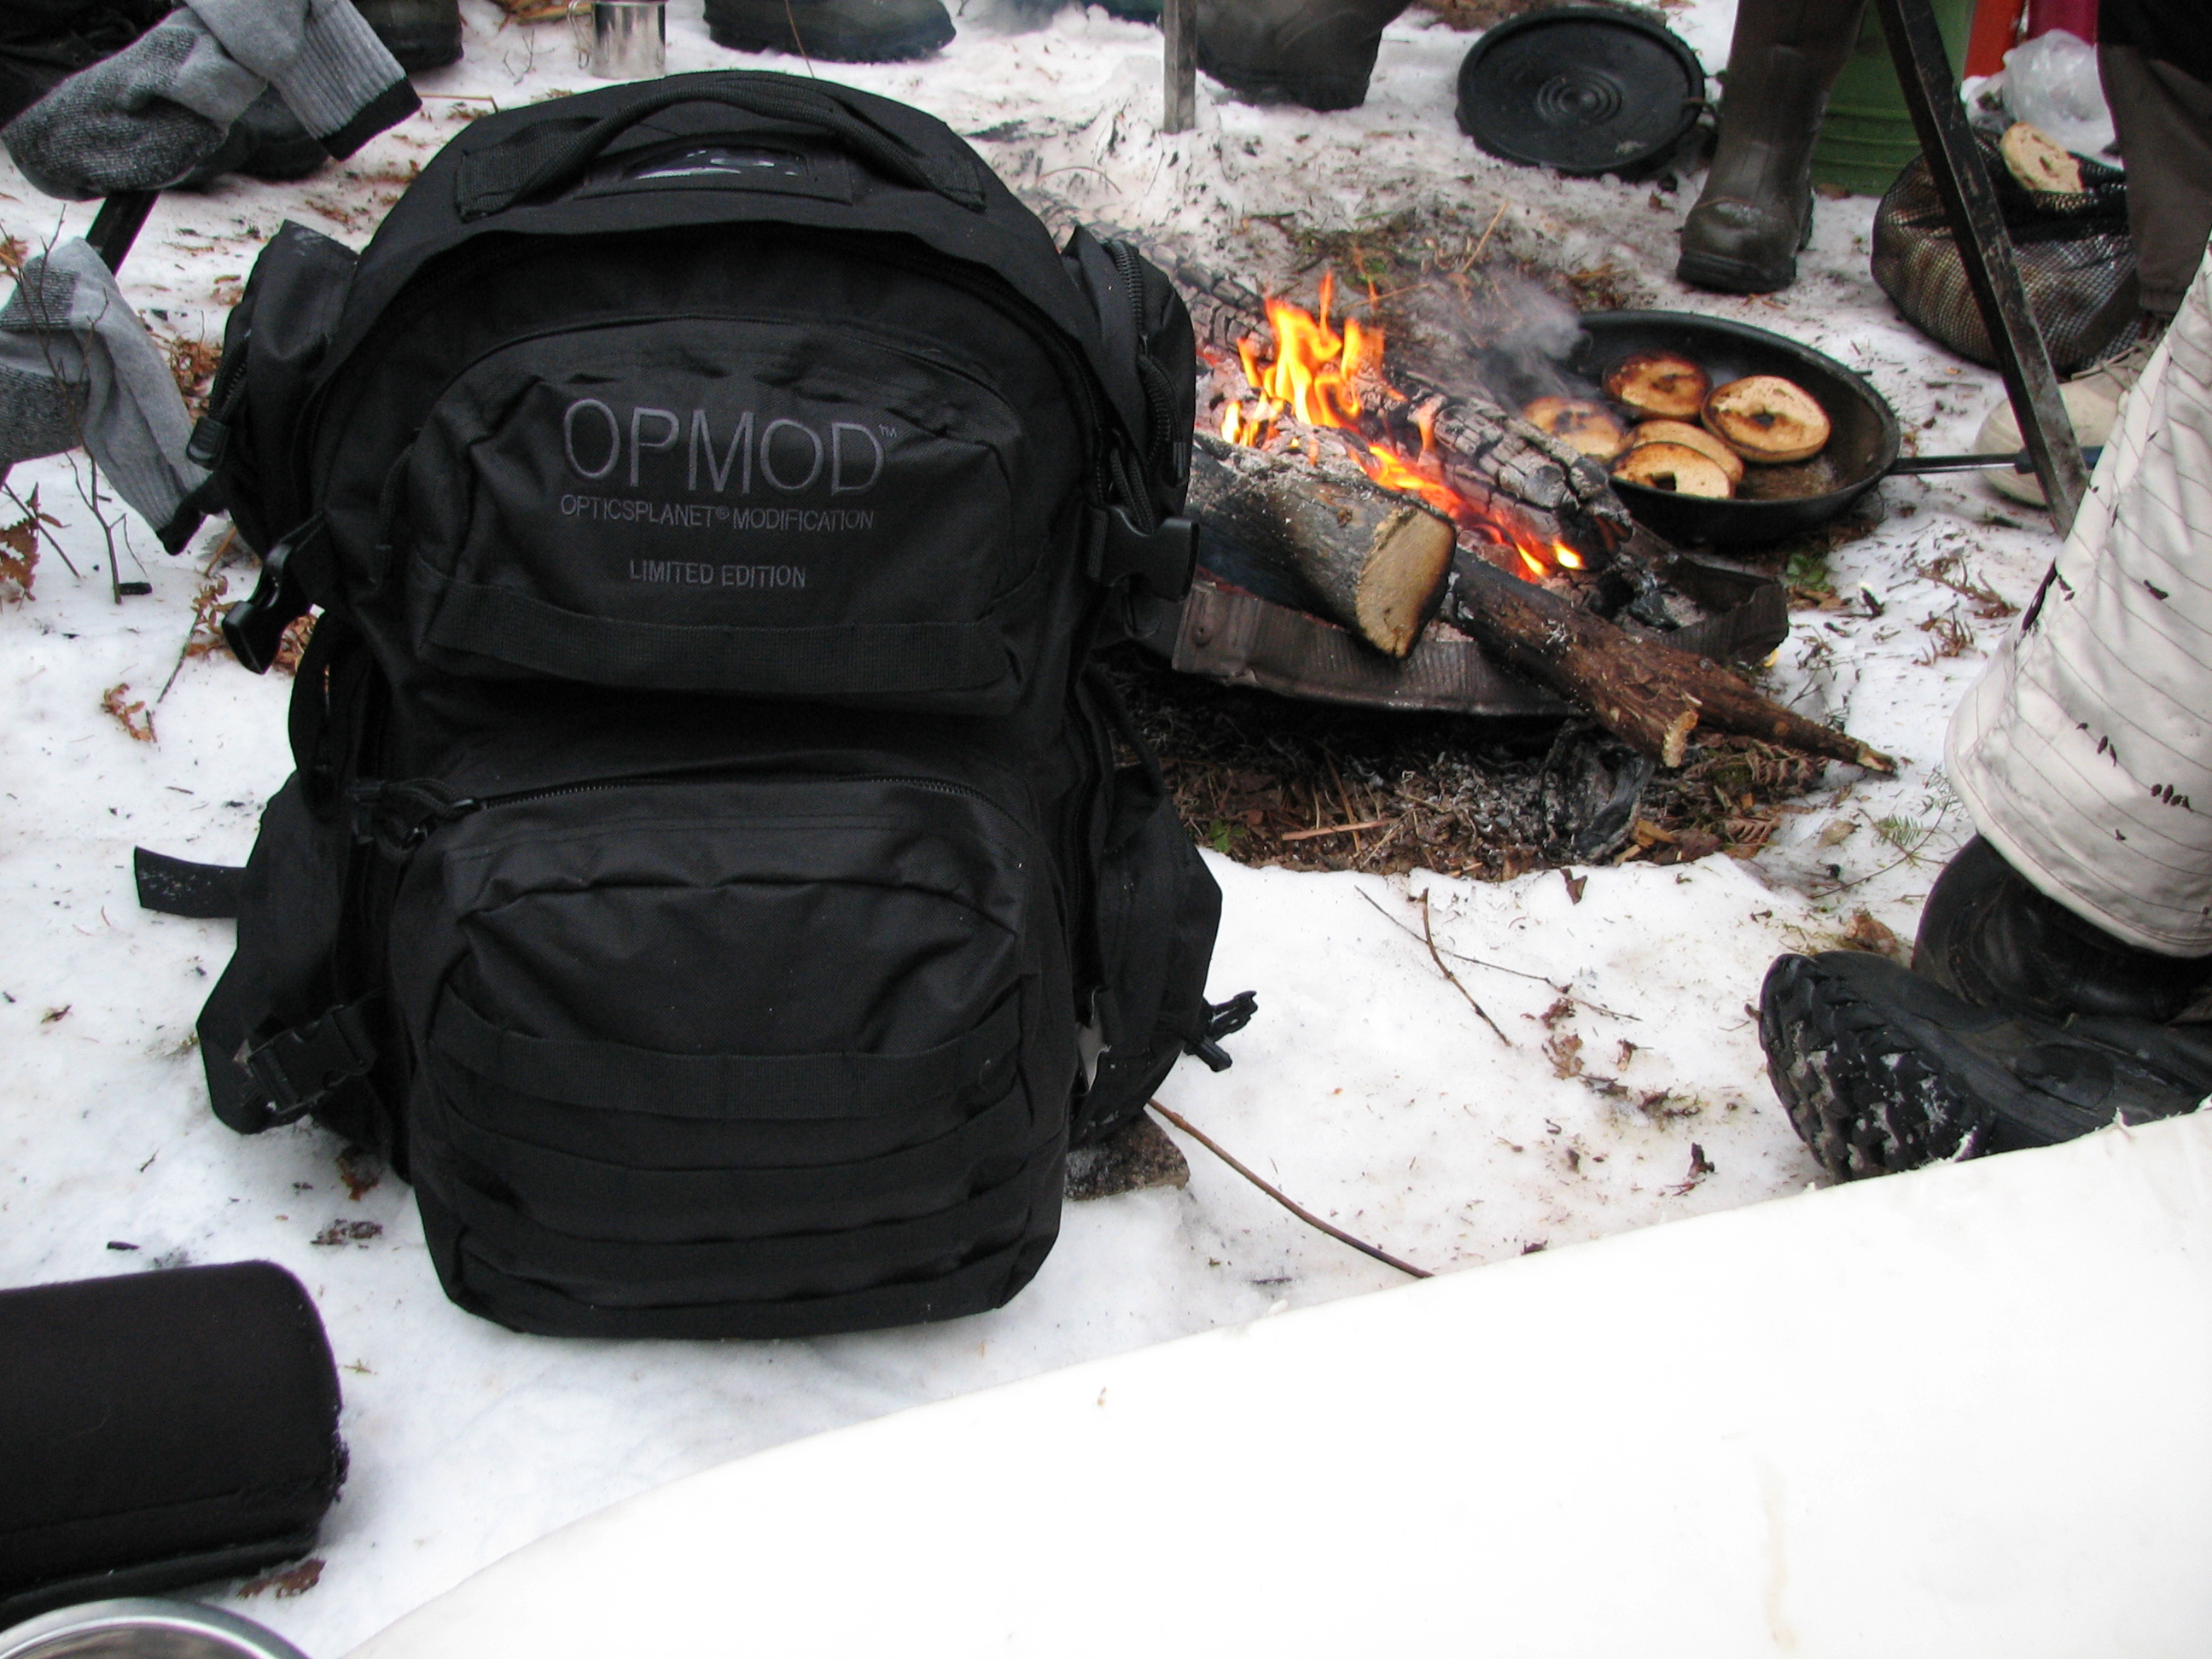 Fireside with OPMOD Bag